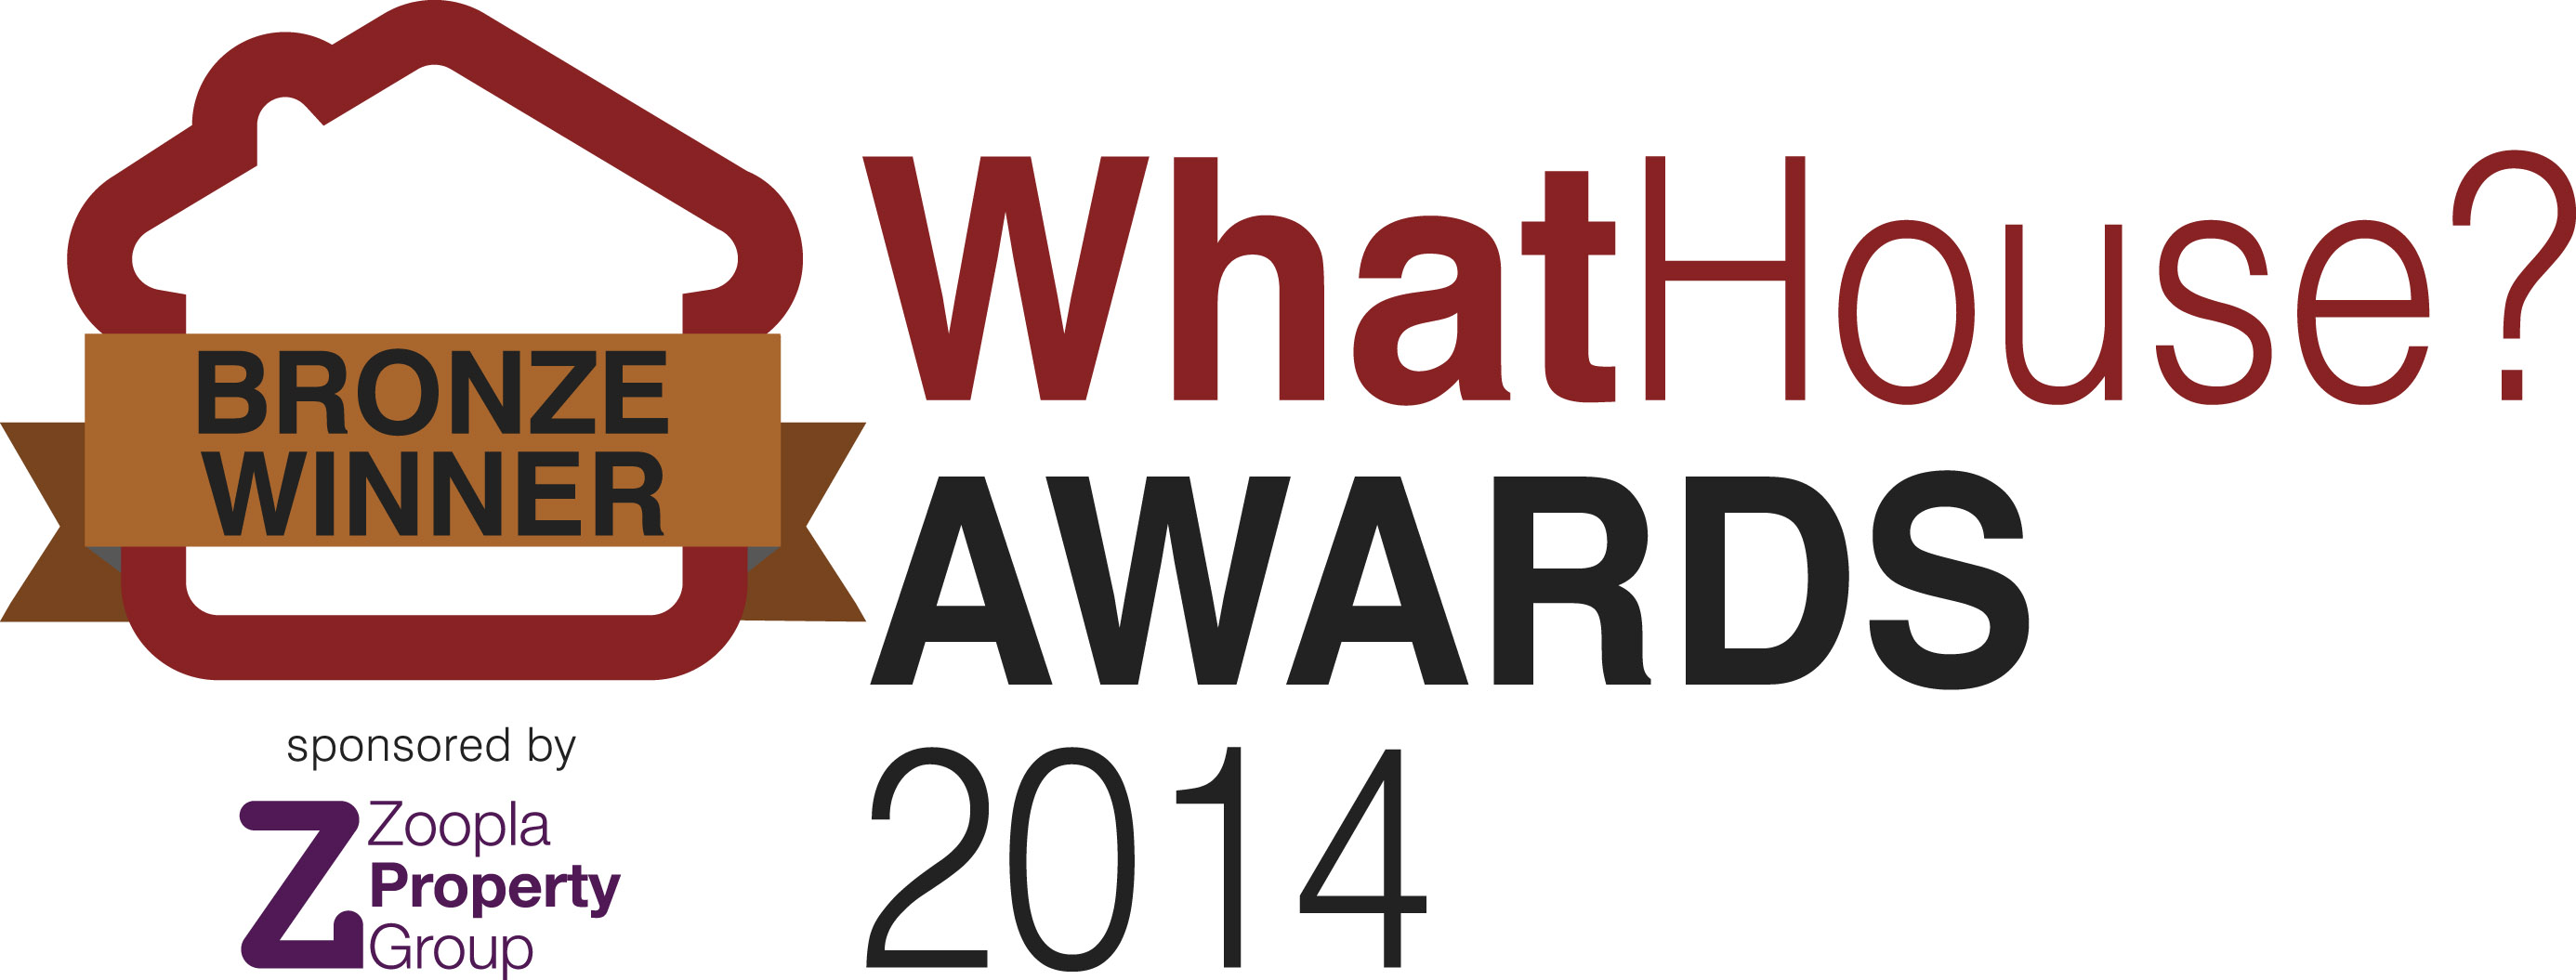 WhatHouse? Awards Winner Bronze 2014